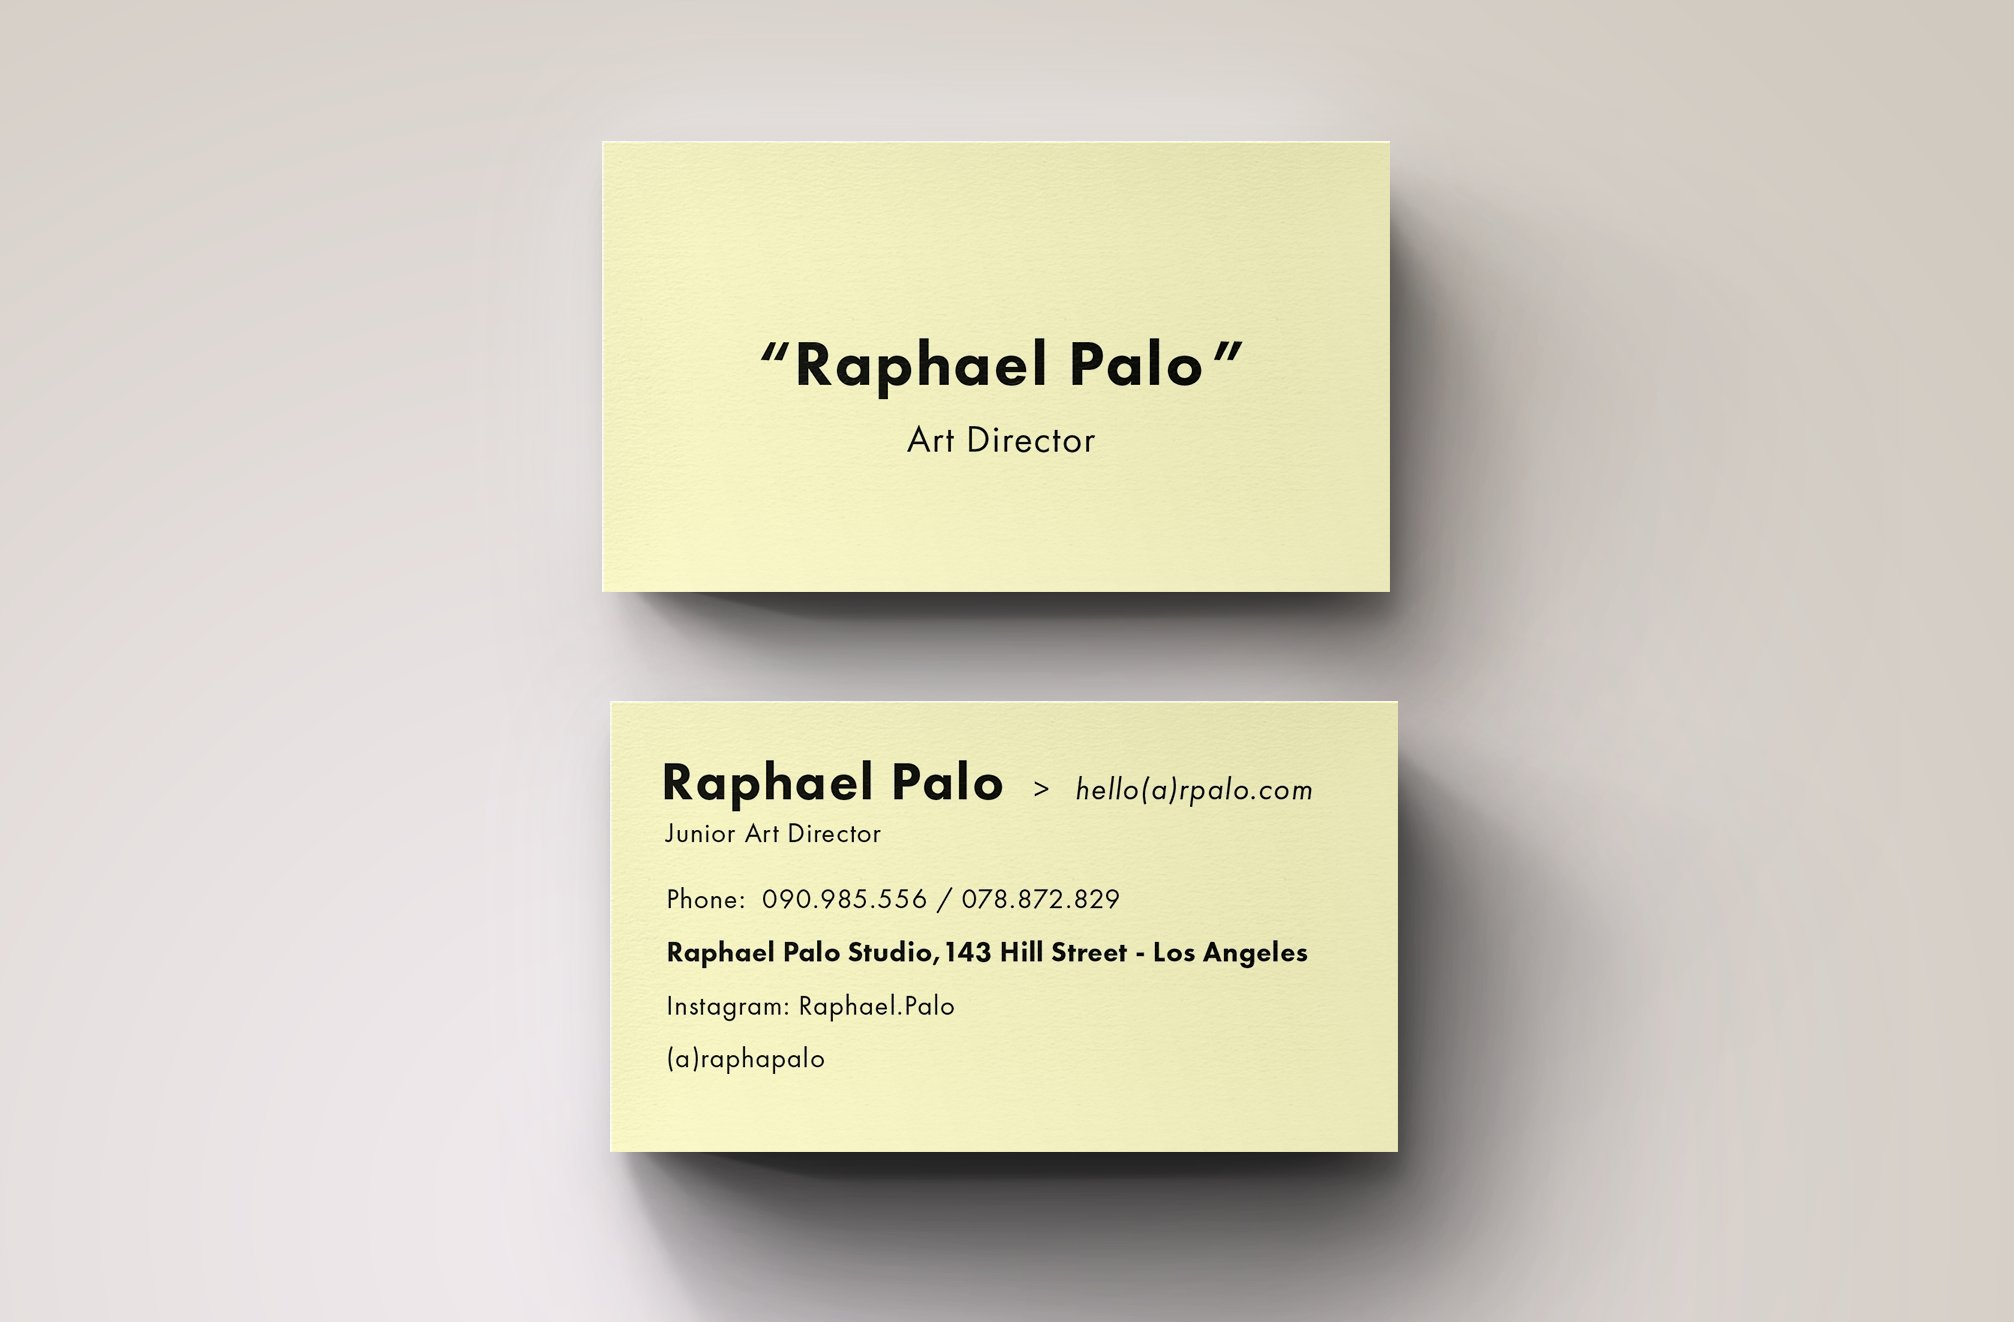 Art director business card template business card templates art director business card template business card templates creative market wajeb Image collections